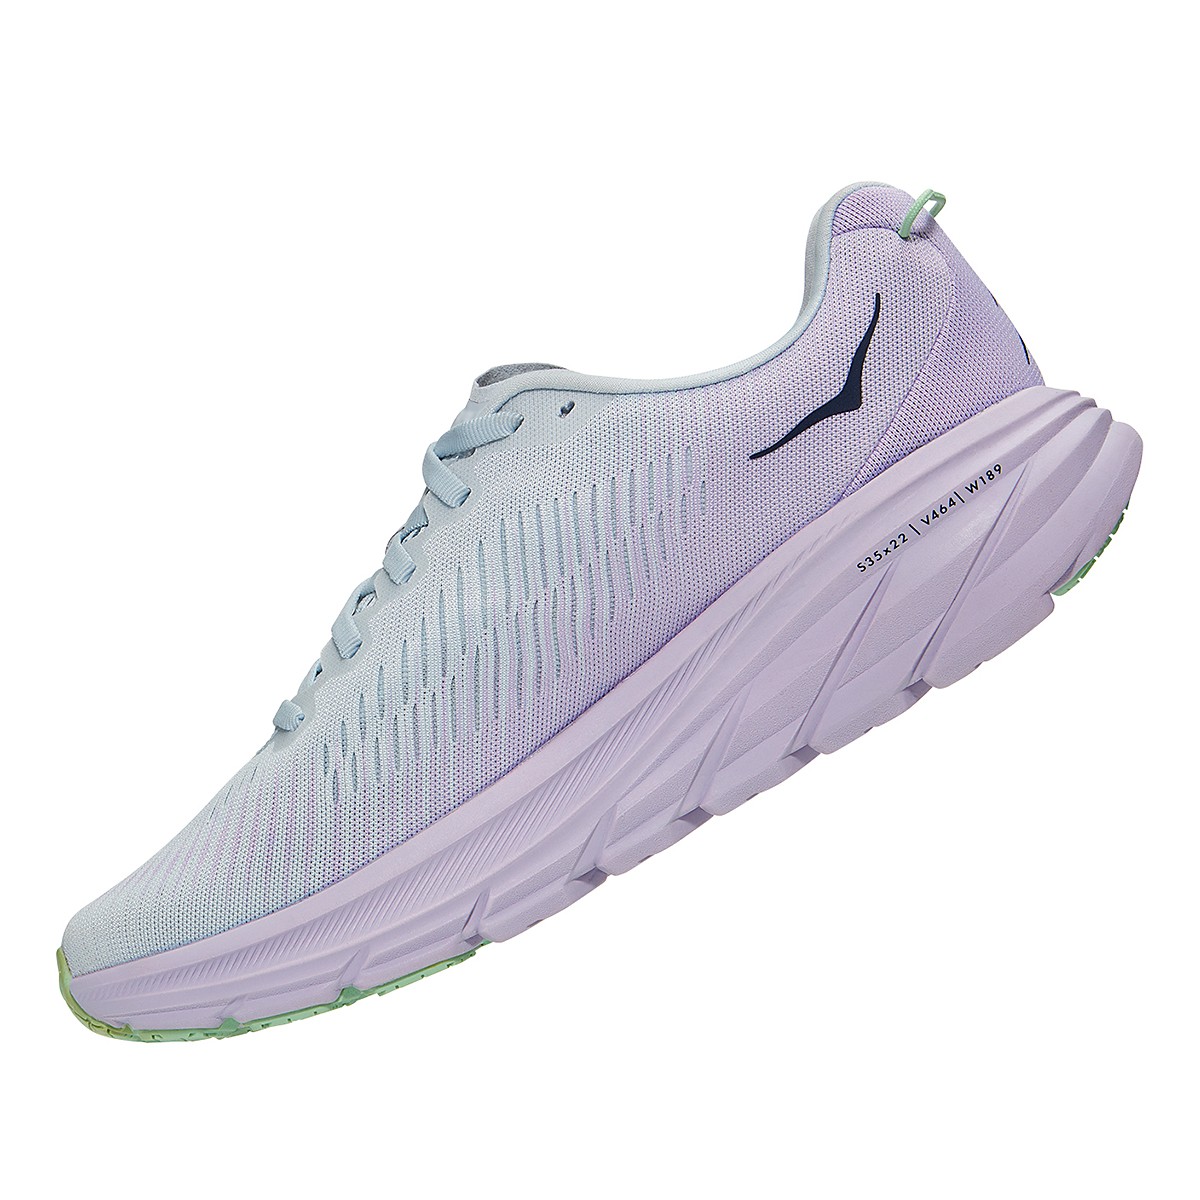 Women's Hoka One One Rincon 3 Running Shoe - Color: Plein Air/Orchid Hush - Size: 5 - Width: Regular, Plein Air/Orchid Hush, large, image 4